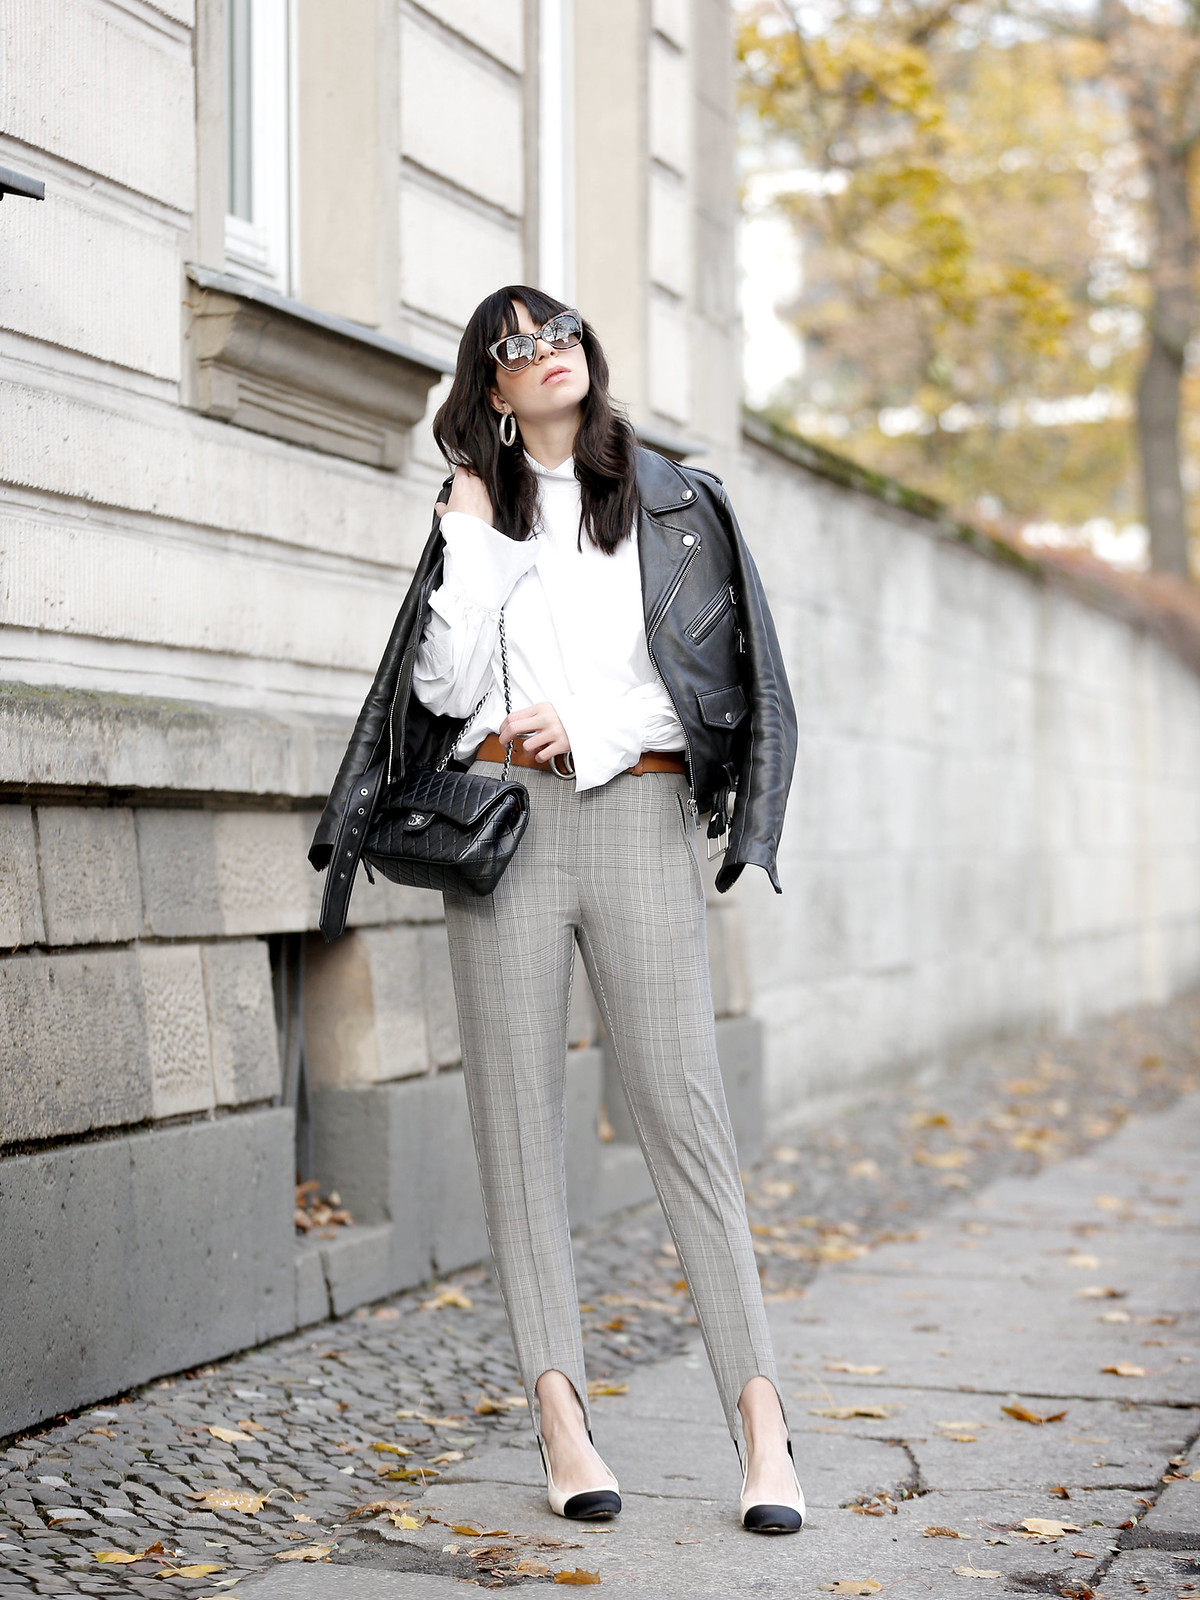 outfit stirrup pants biker jacket h&m zara lookbook white shirt riding lord english british fashionblogger bangs brunette sexy styleblogger pretty parisienne gucci belt gg chanel 2.55 classic double flap ricarda schernus cats & dogs modeblog berlin 7